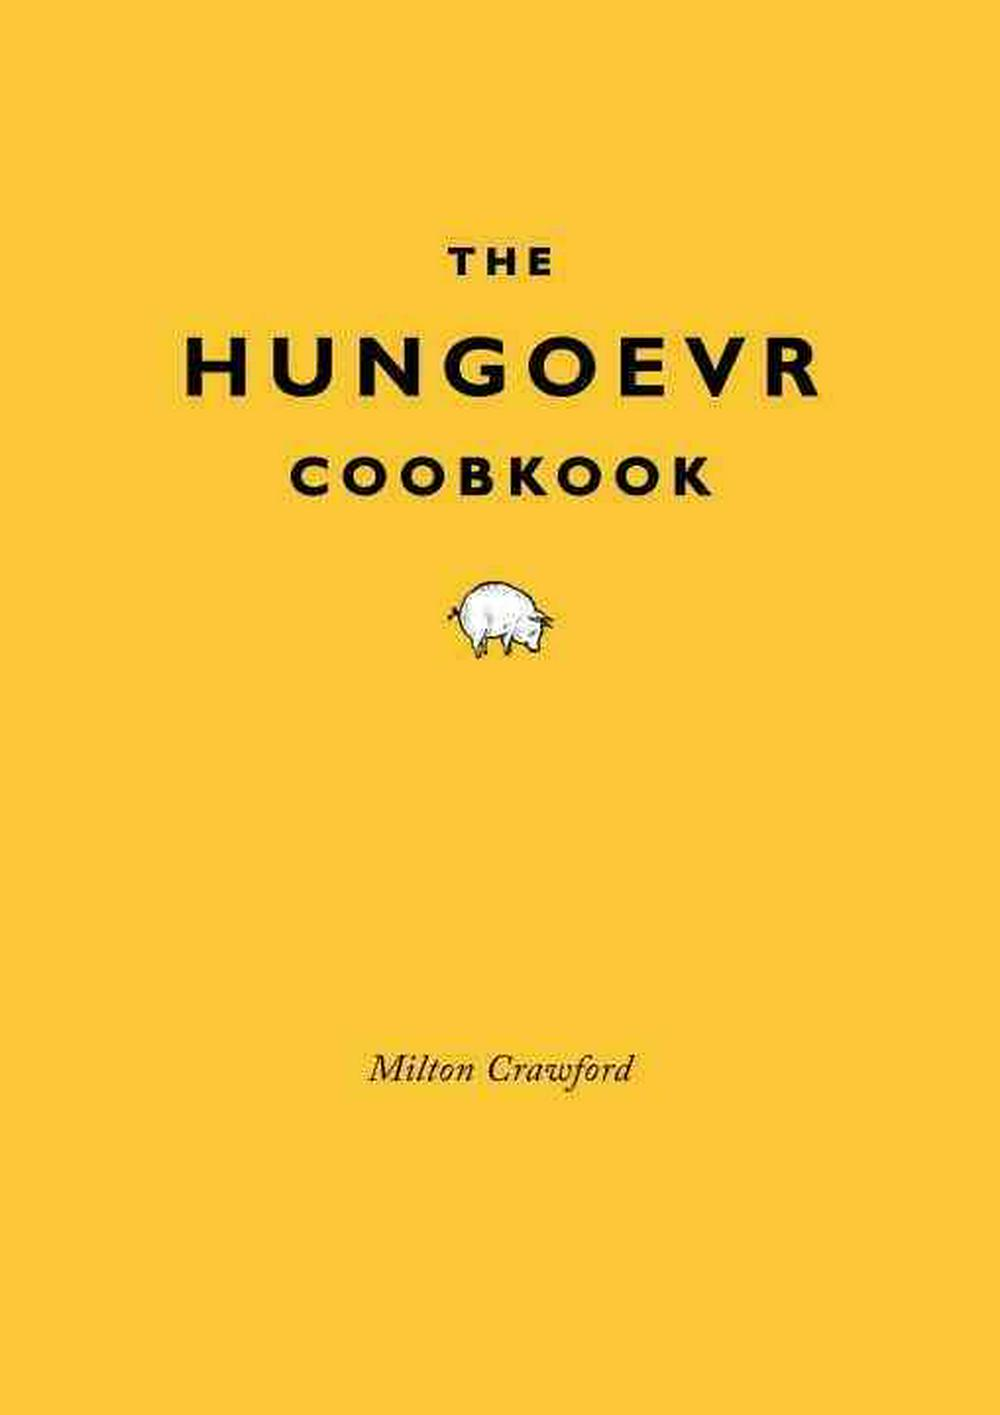 The Hungoevr Cookbook by Milton Crawford, ISBN: 9780307886316